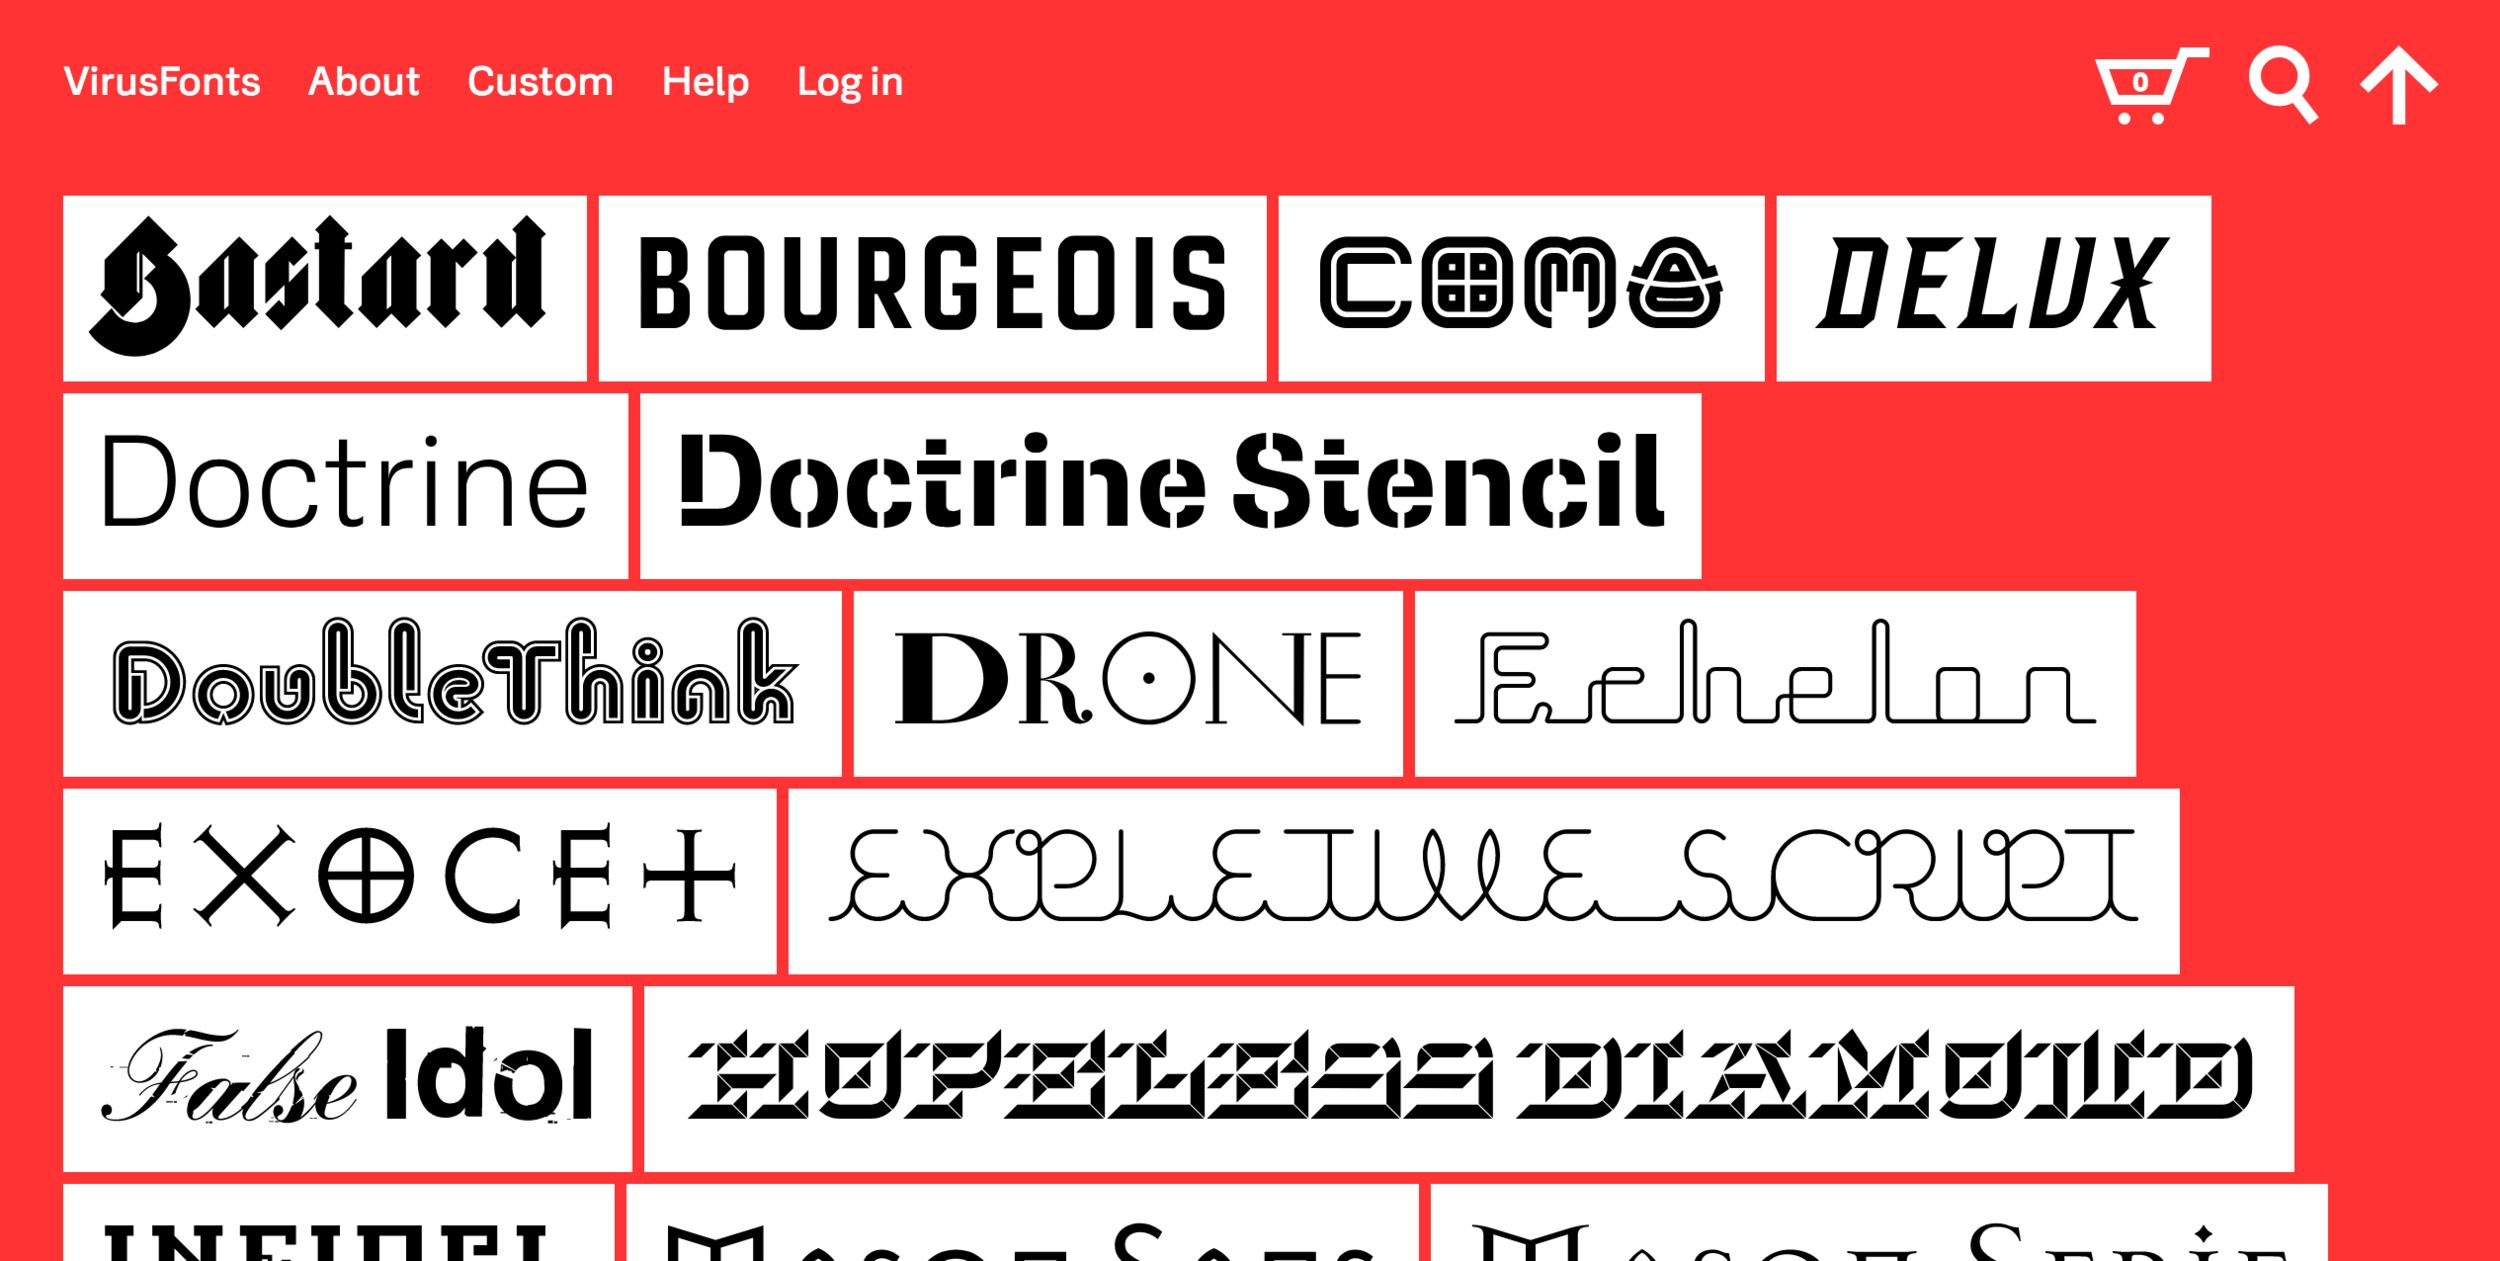 Virus FOnts Relaunched Website.png